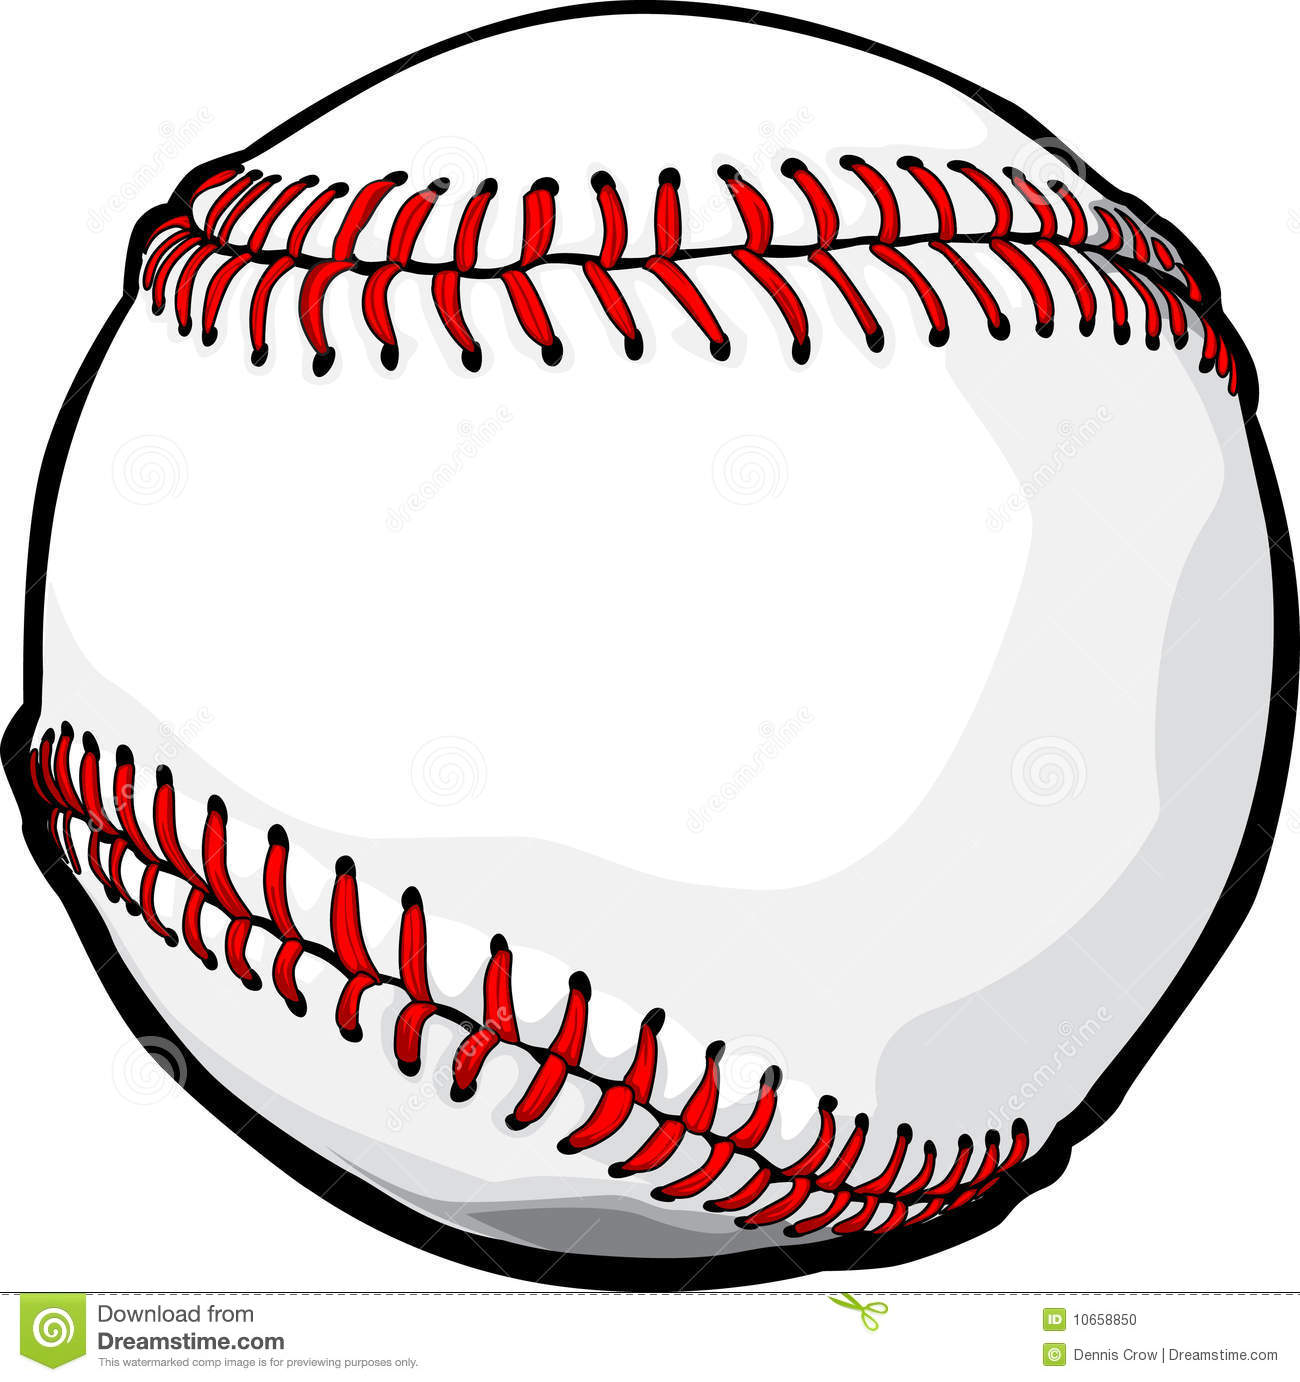 Softball vector clipart free download best softball vector clipart on clipartmagcom for Softball vector free download